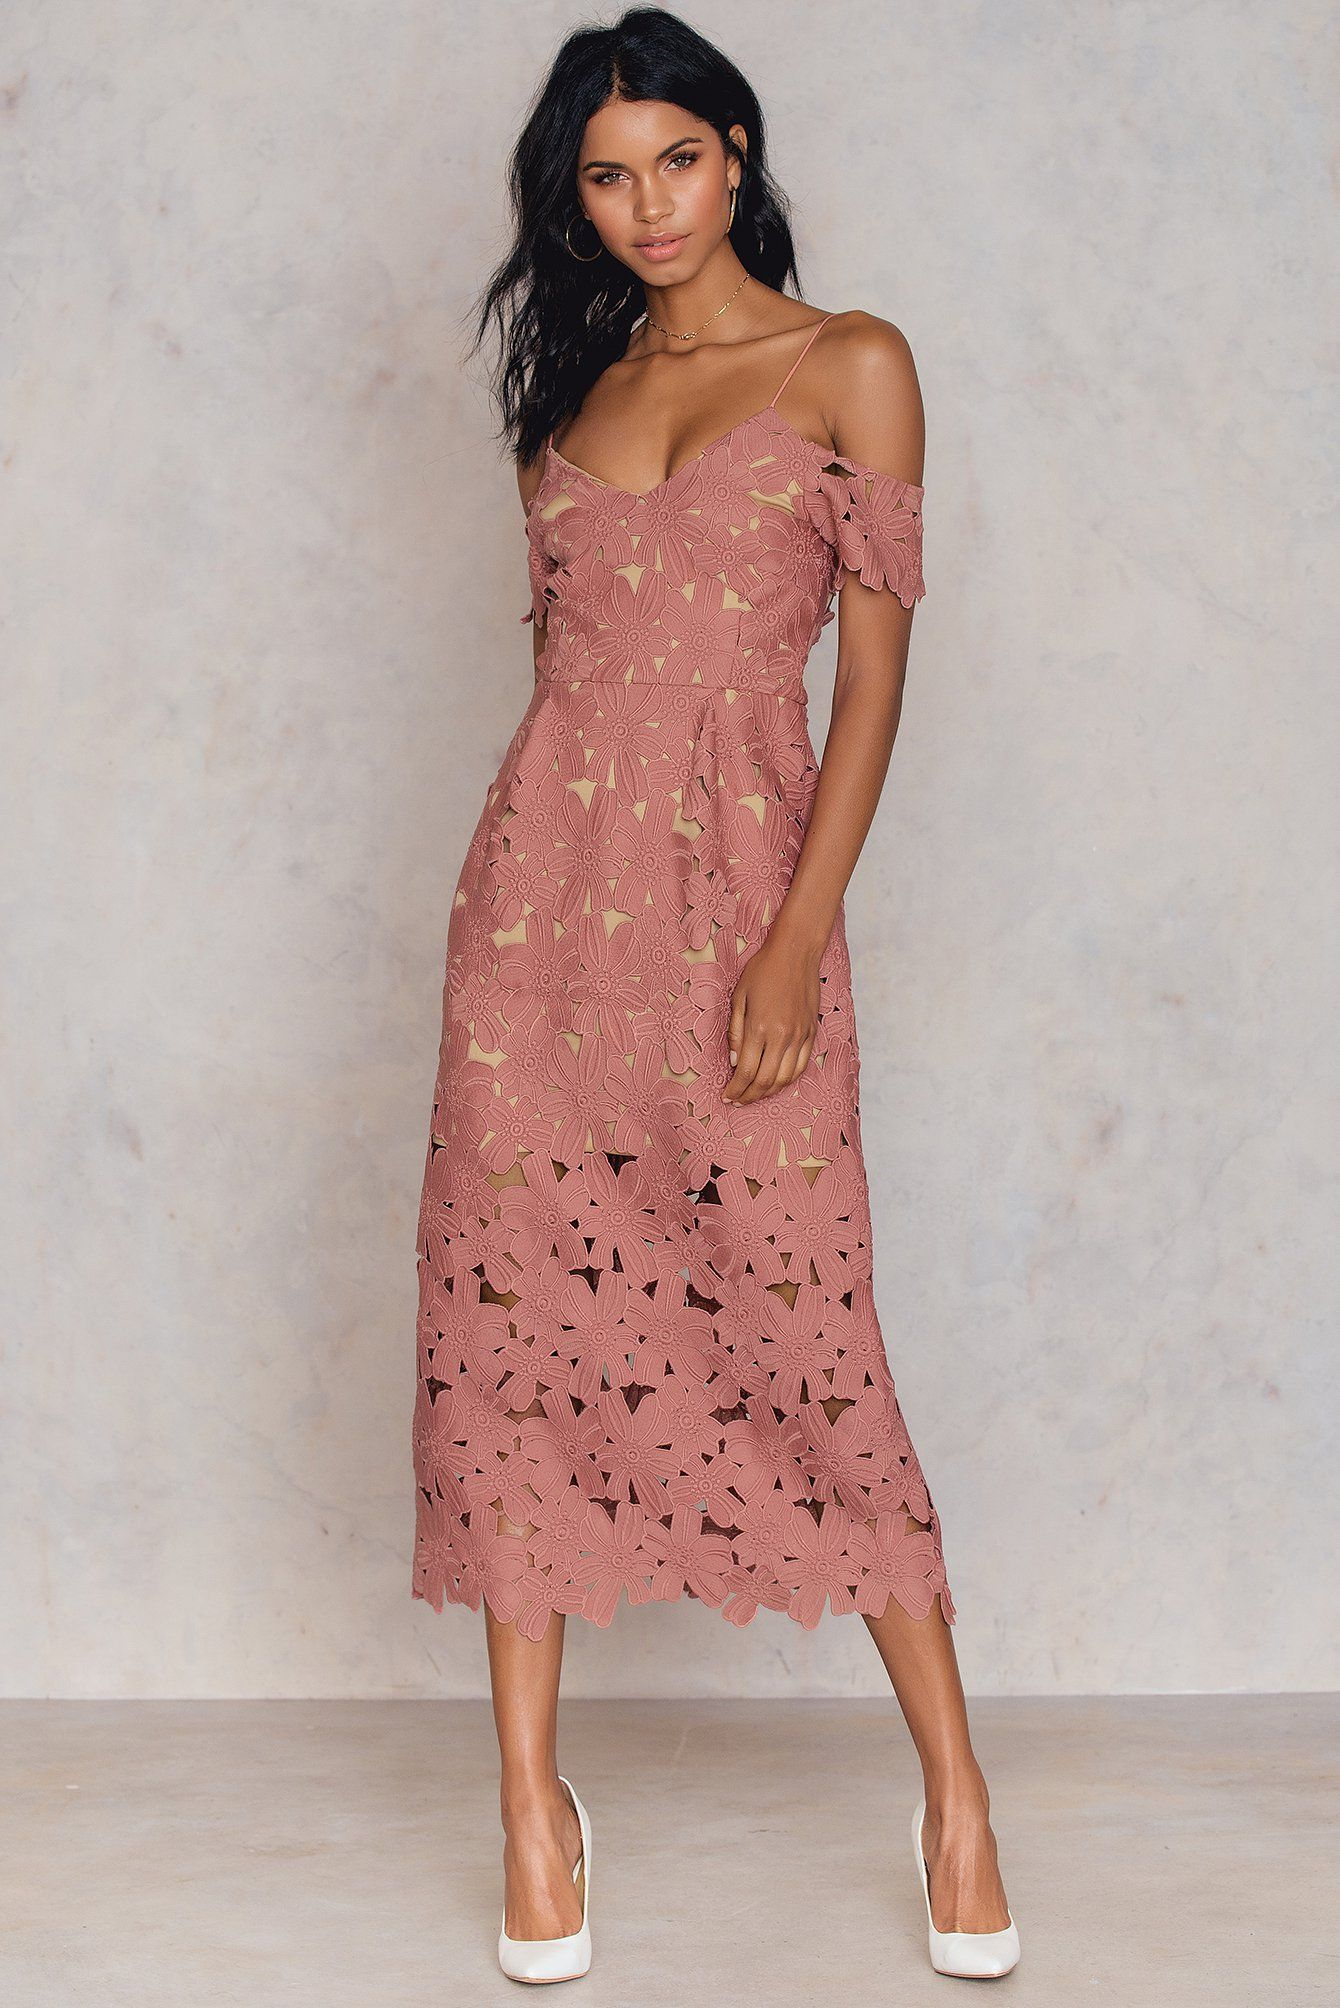 The Cold Shoulder Crochet Midi Dress By Na Kd Boho Features Finely Crafted Floral Embroidery With A Thin Strap And Floral Crochet Cold Shoulder Design Beige Li